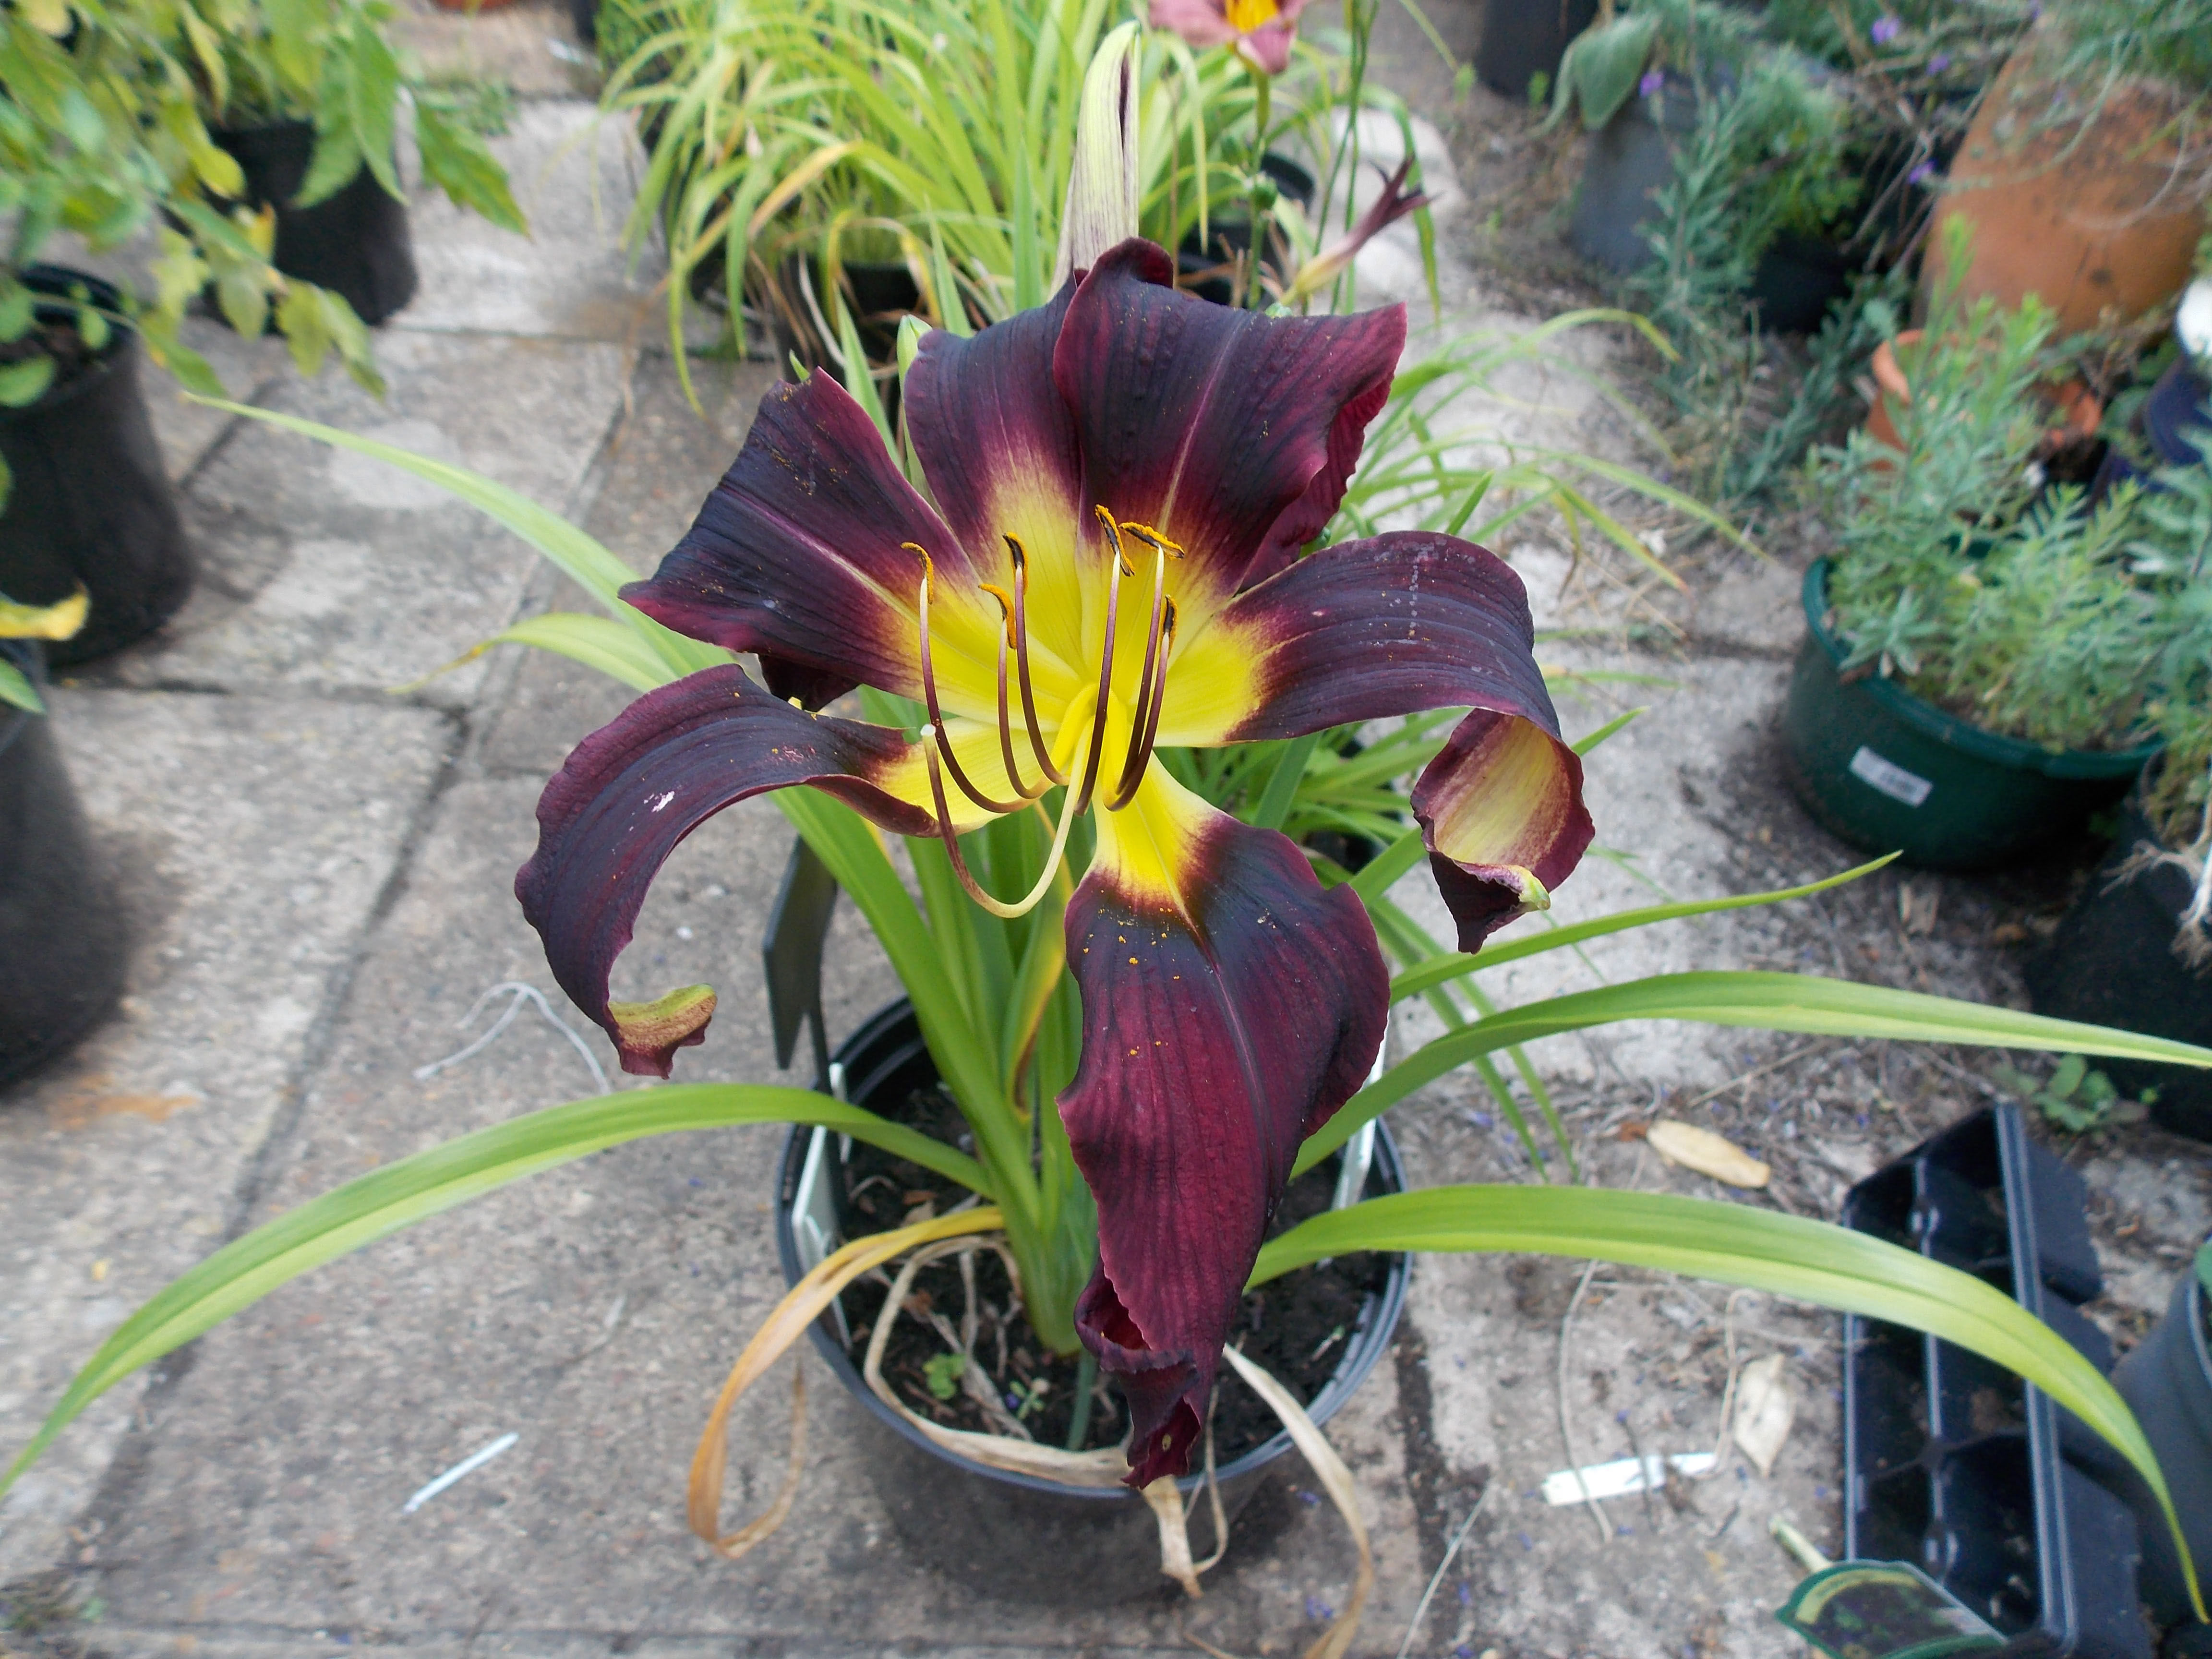 Hemerocallis Black Ice in full bloom.